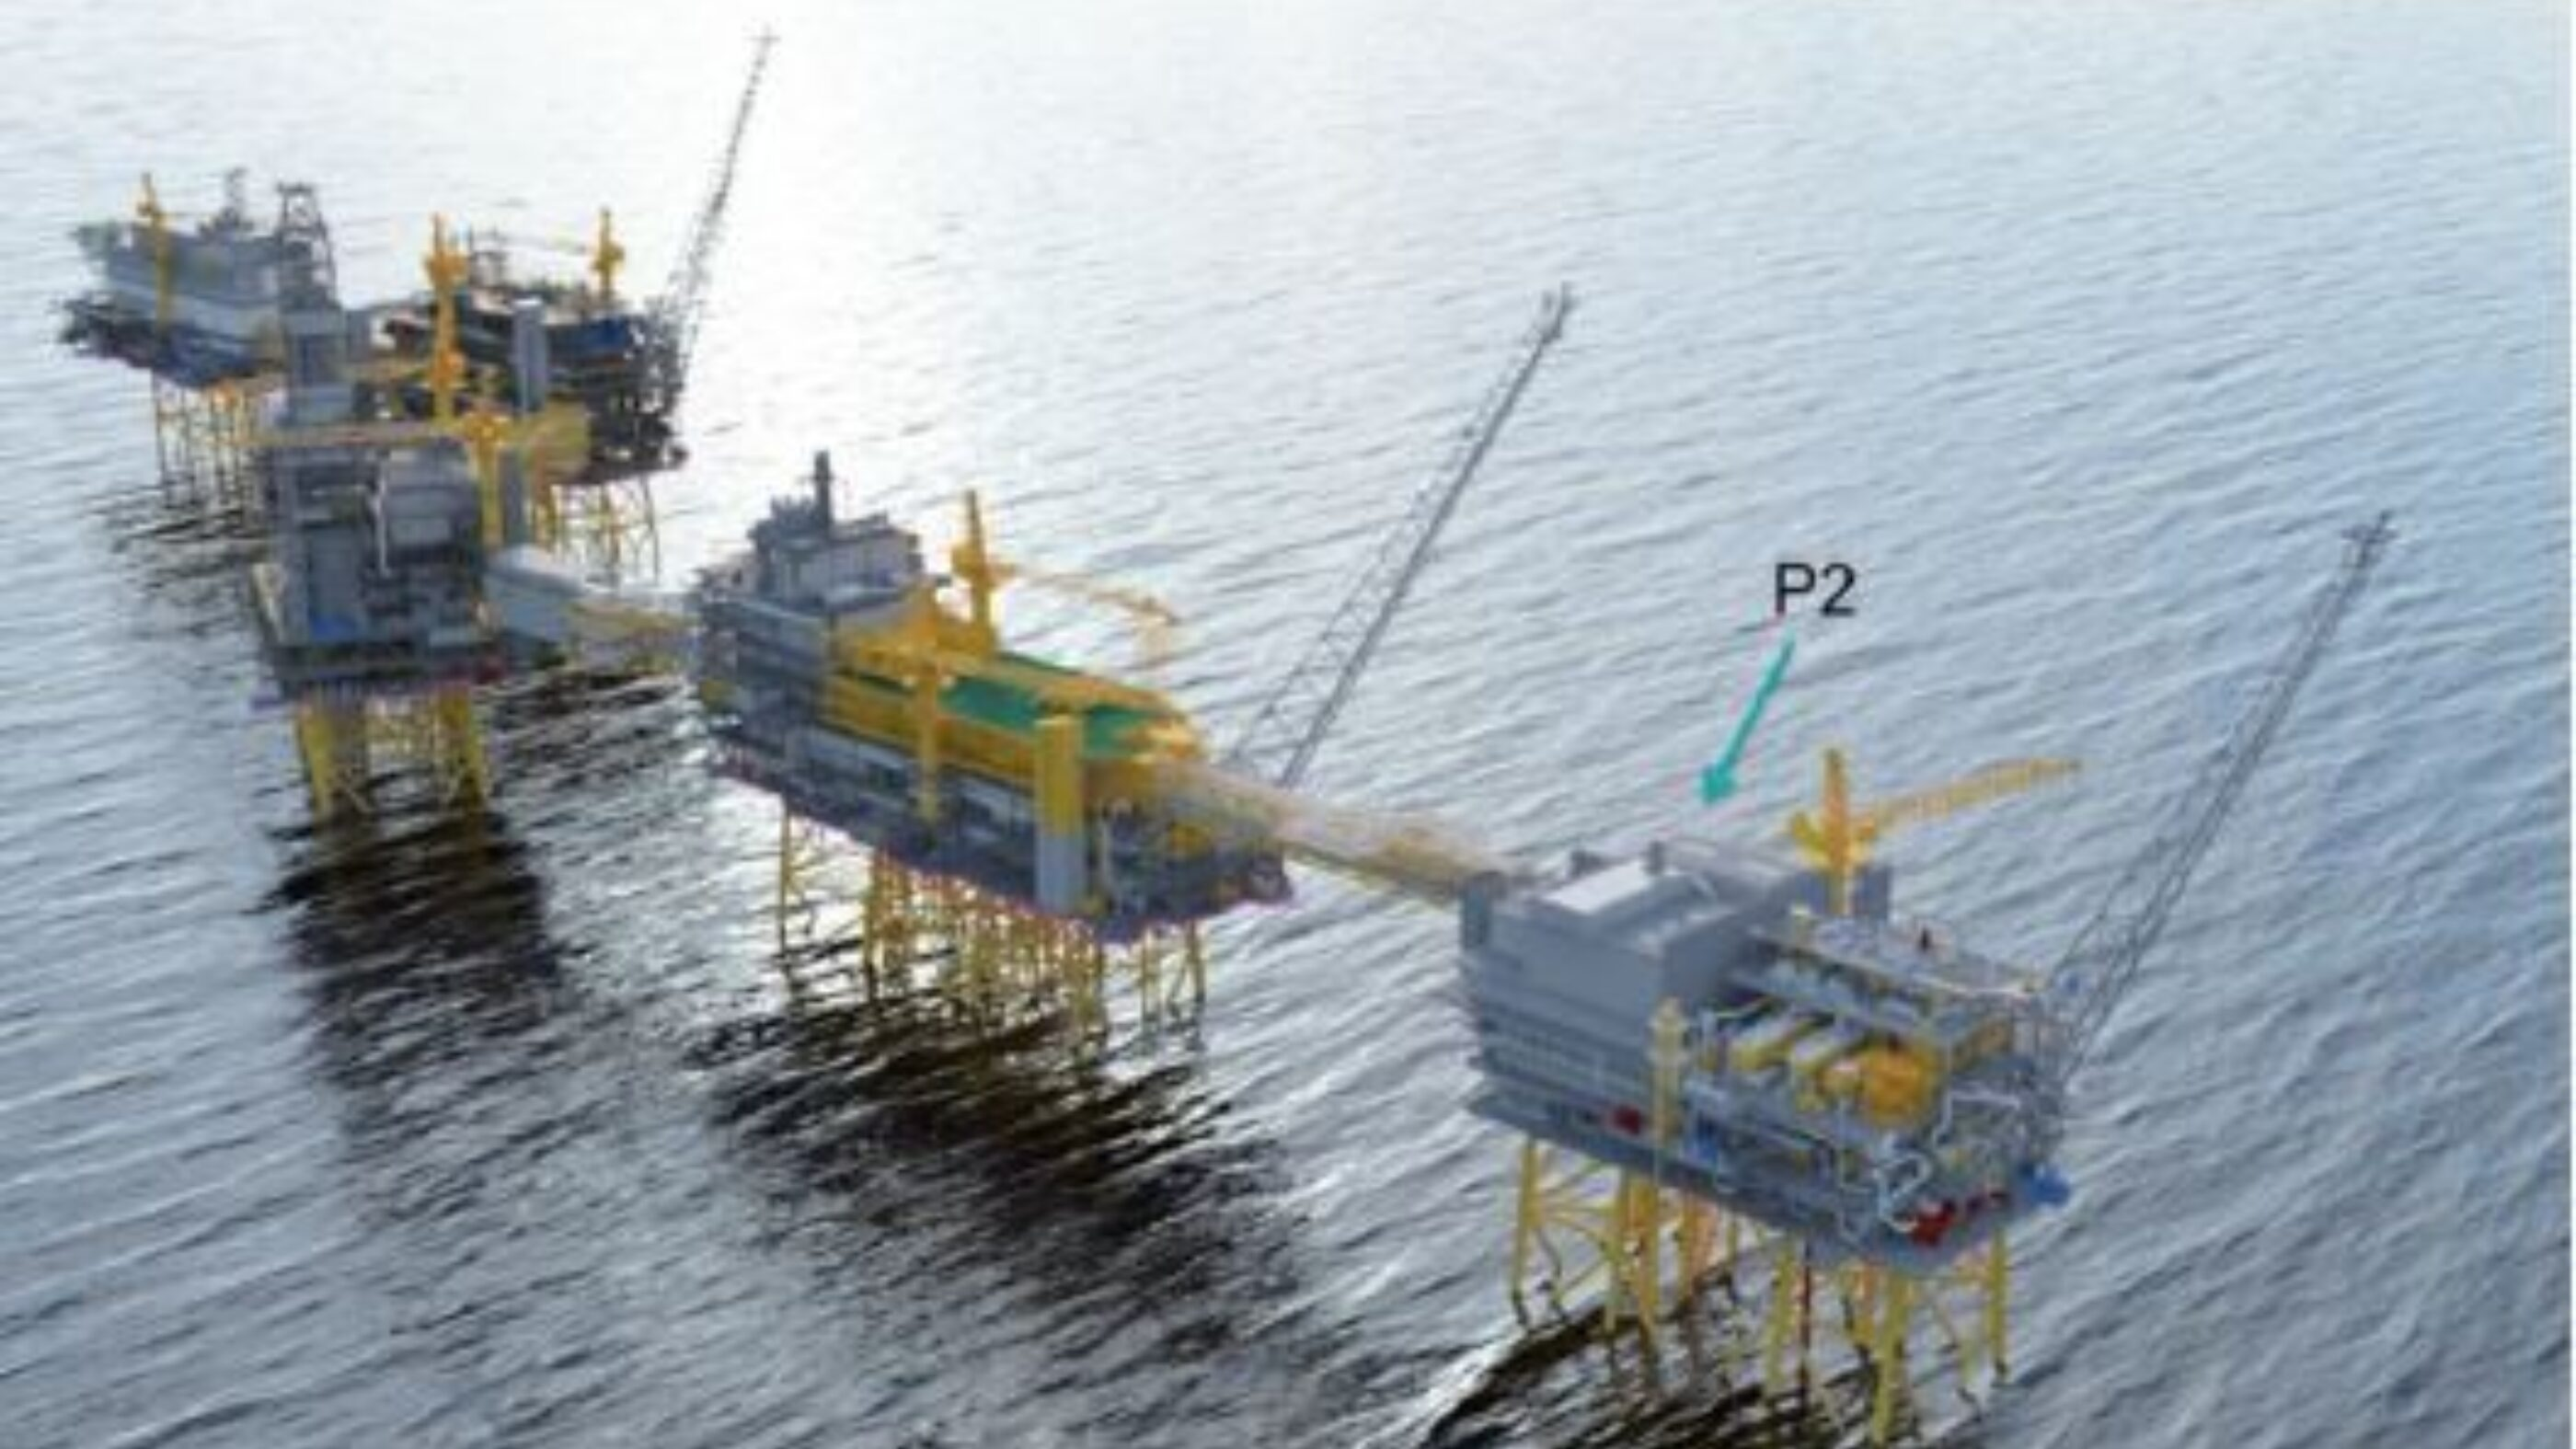 Johan Sverdrup full project sea view incl P2 top view